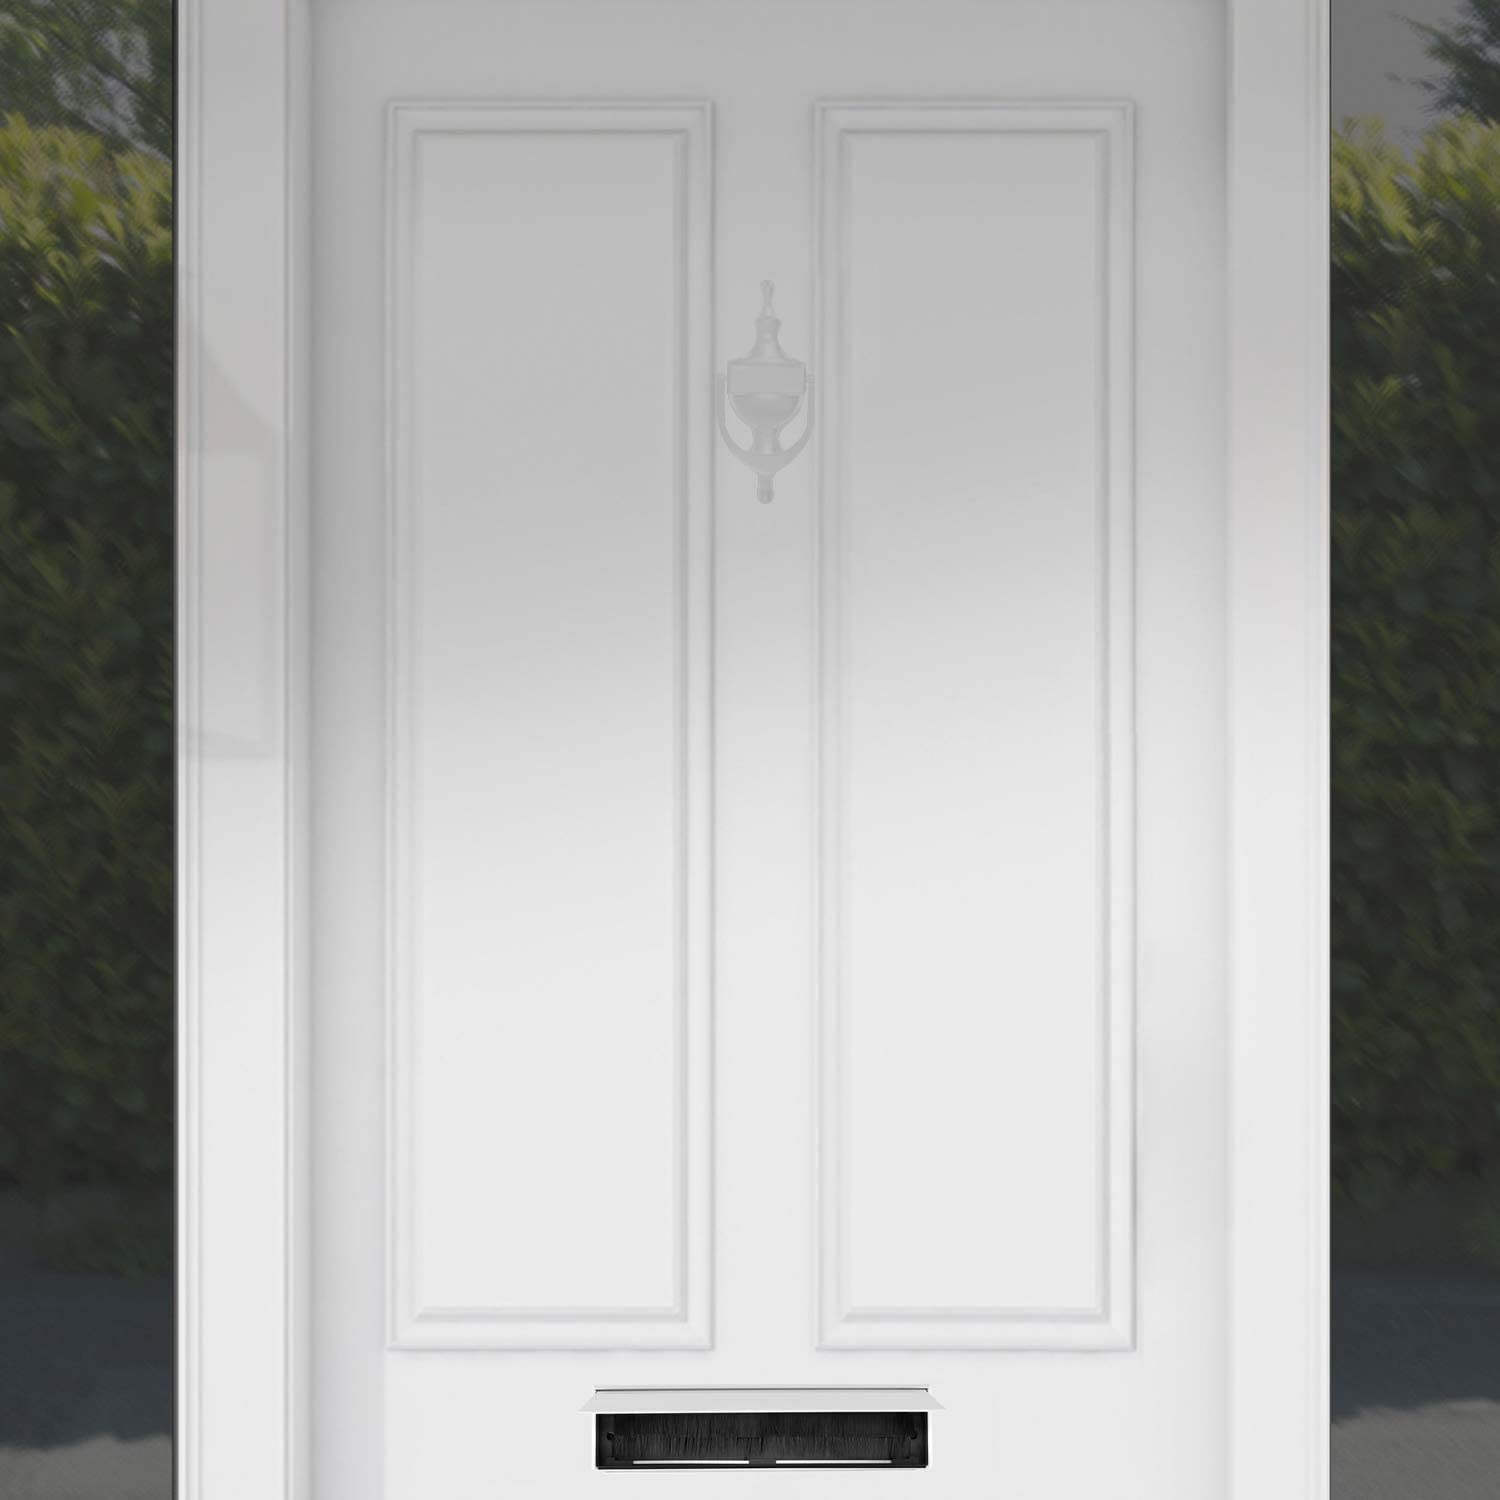 SEQUAL 12 Inch White Letterplate Anti Vandal Letter Box Flap Aluminium Letter Box Door Furniture External Letter Box Draught Excluder with Internal Water Seal to Prevent Water Damage